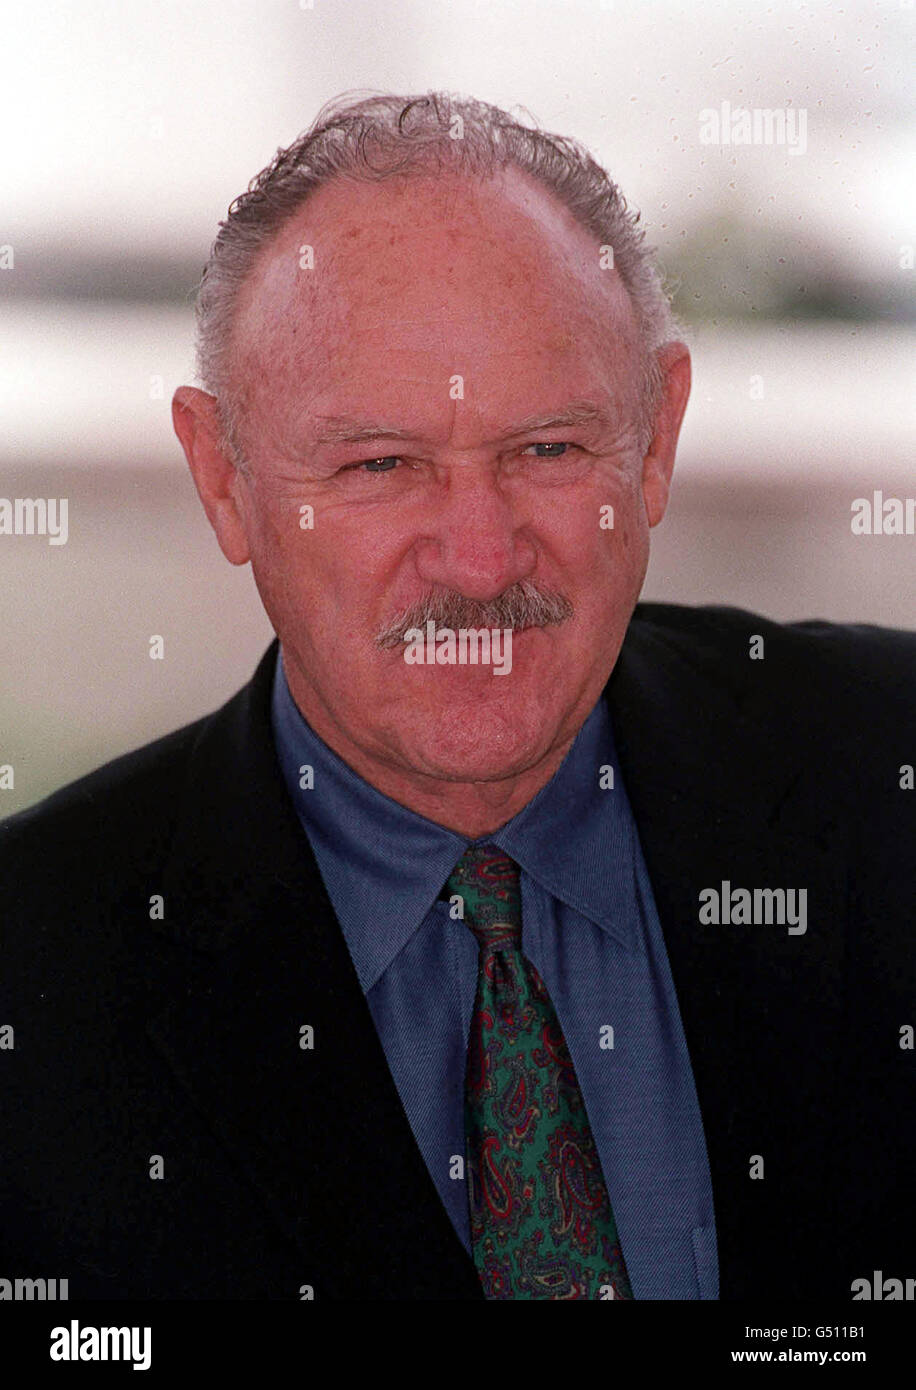 Hackman at Cannes - Stock Image